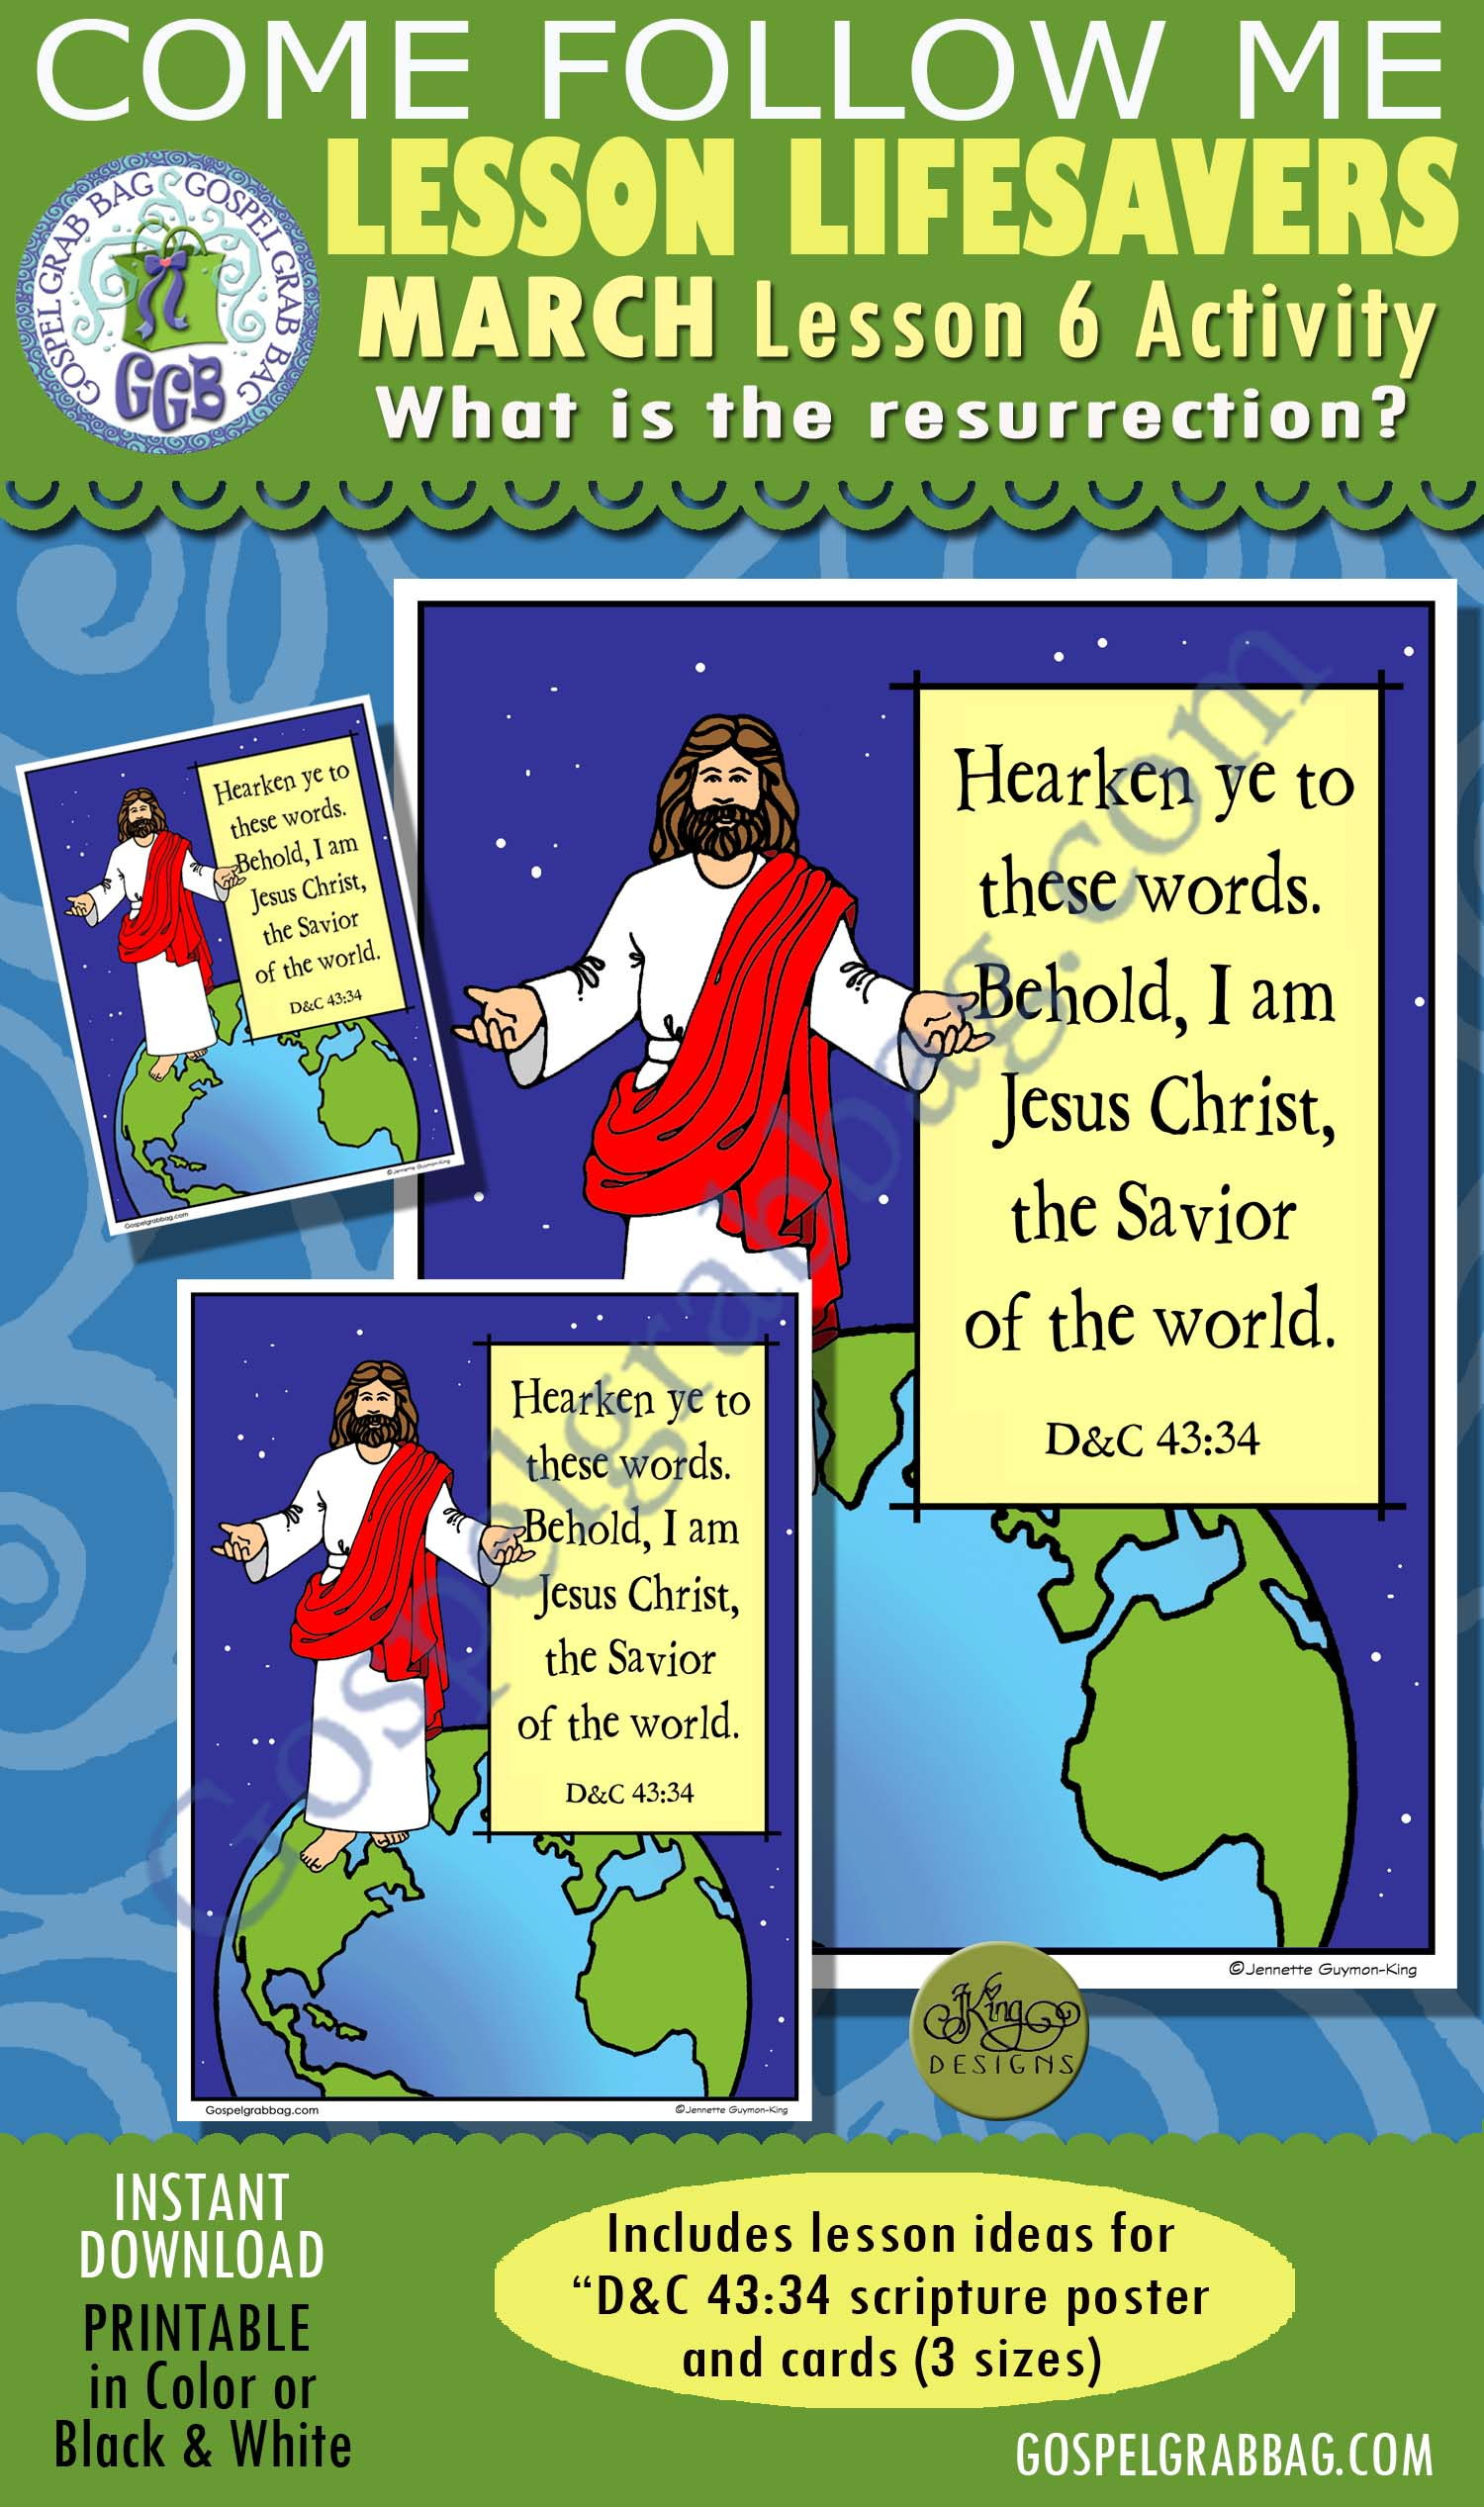 """$2.00 MARCH Lesson 6 Come Follow Me """"What is the resurrection?"""" ACTIVITY: D&C 43:34 Savior of the world!, Scritpure Poster / Cards"""